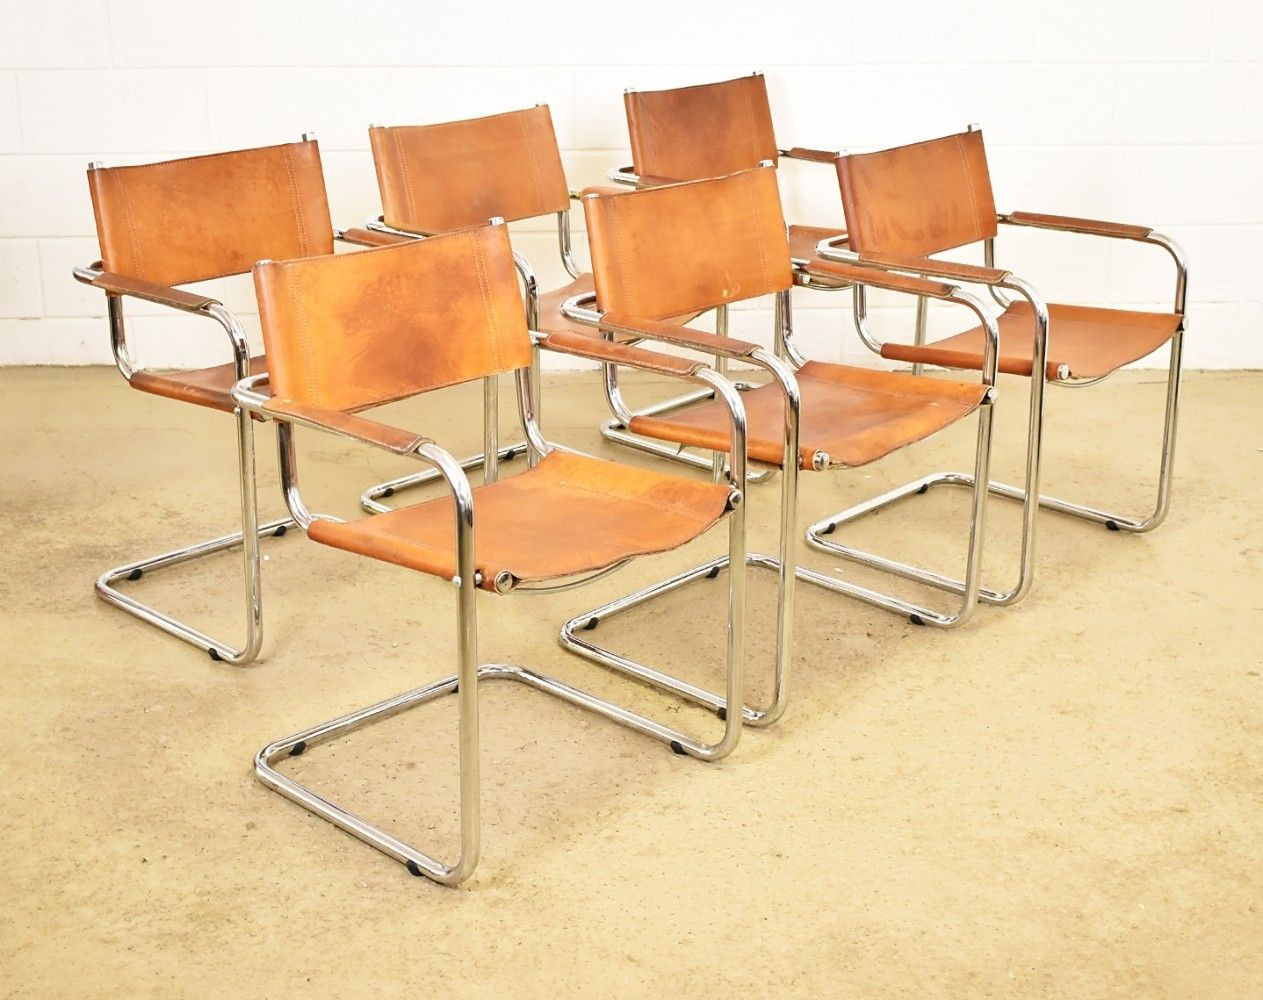 Set of 6 S34 dinner chairs from the seventies by Mart Stam